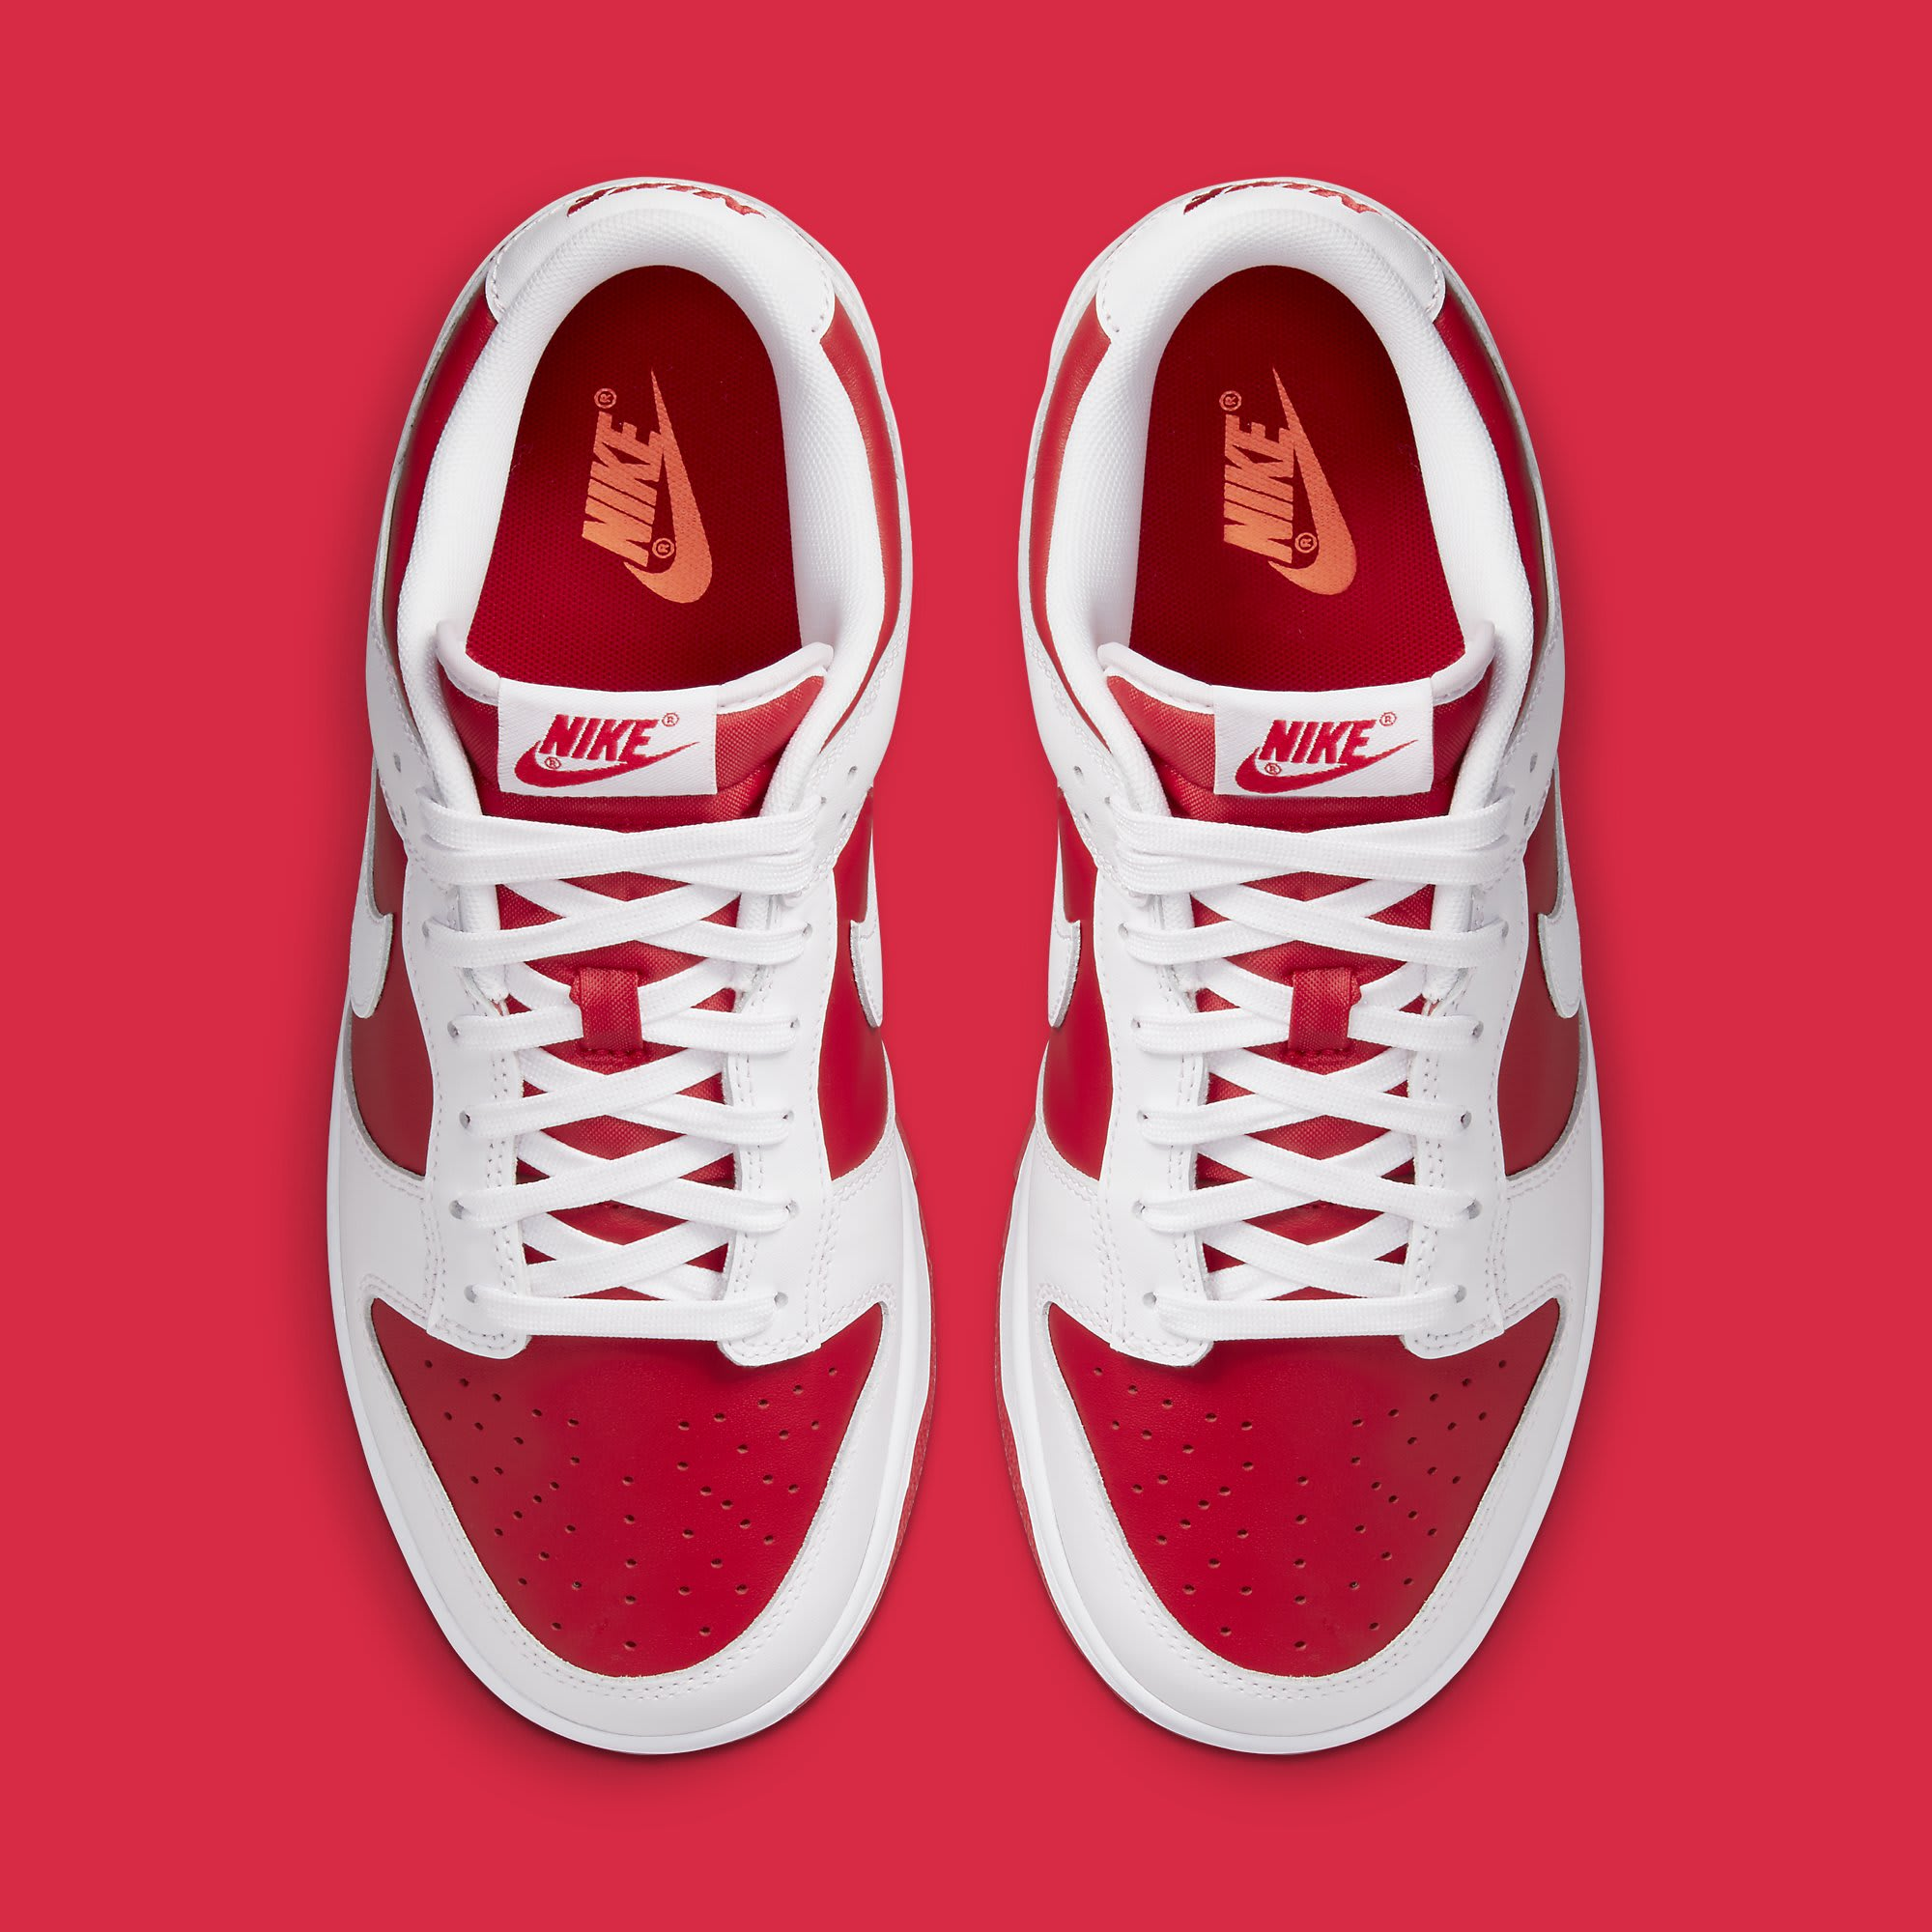 Nike Dunk Low Championship Red DD1391-600 Release Date Top